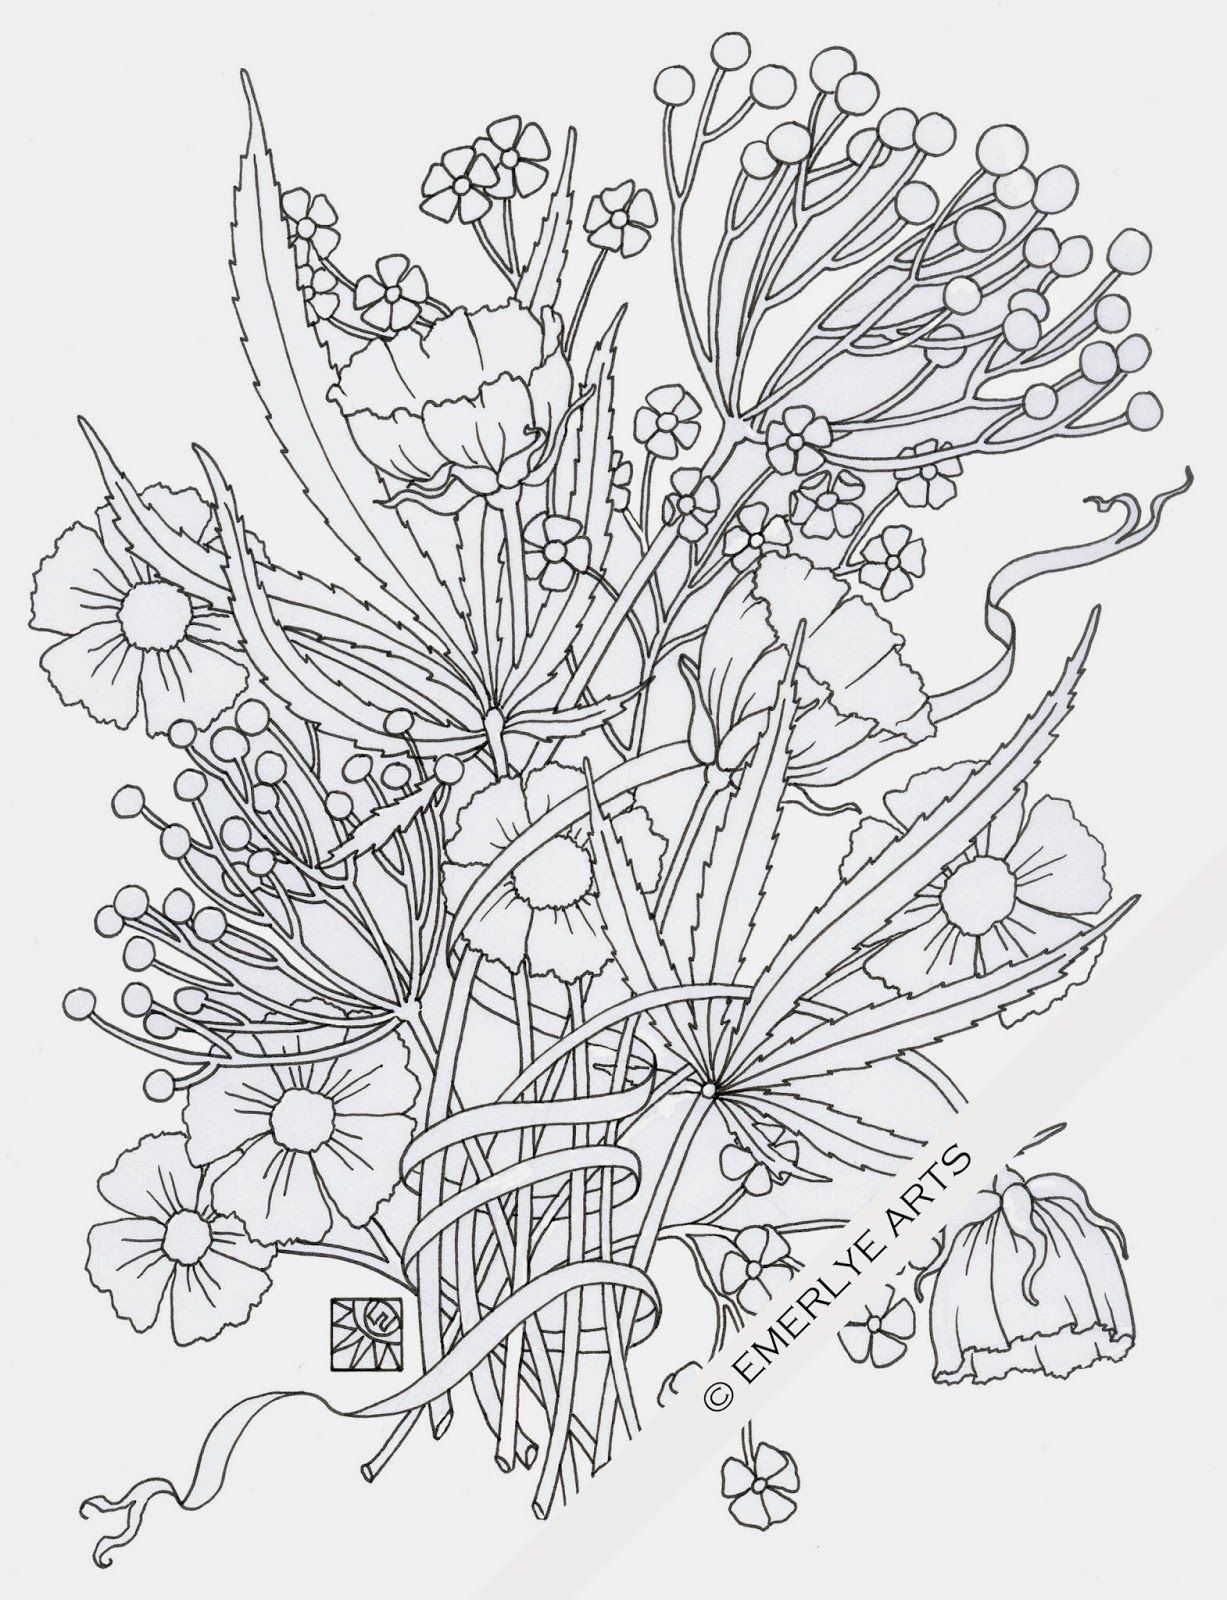 cynthia coloring pages - photo#45